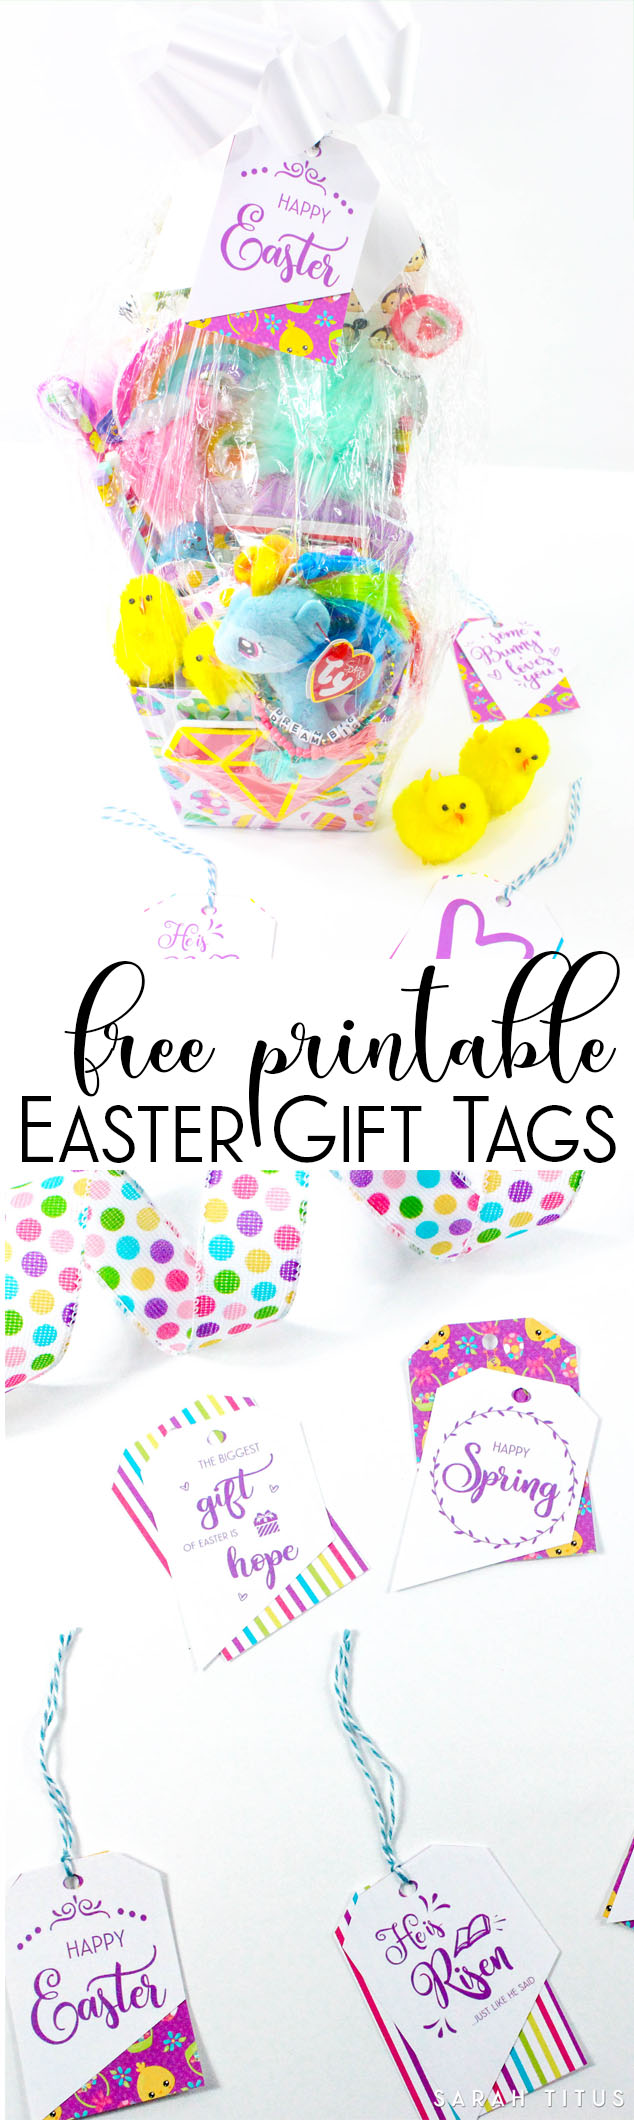 Free printable easter gift tags sarah titus use them for gifts on your easter baskets as place cards as bookmarks negle Choice Image